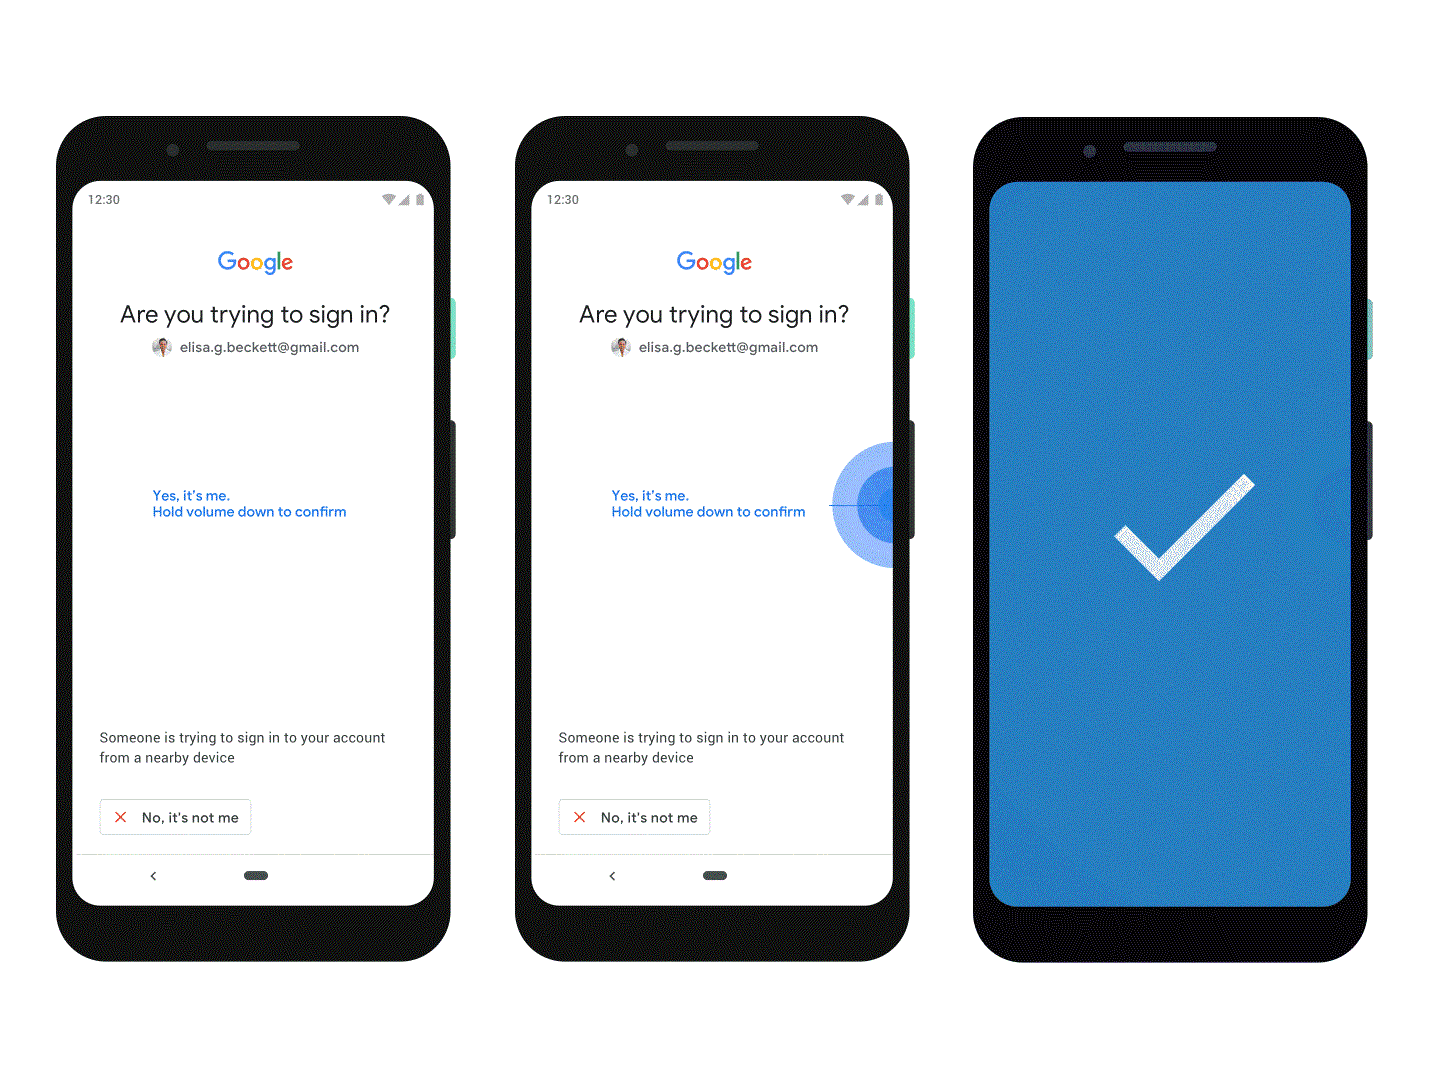 Android devices including version 7 and above can be used as 2FA security keys for signing into Google accounts